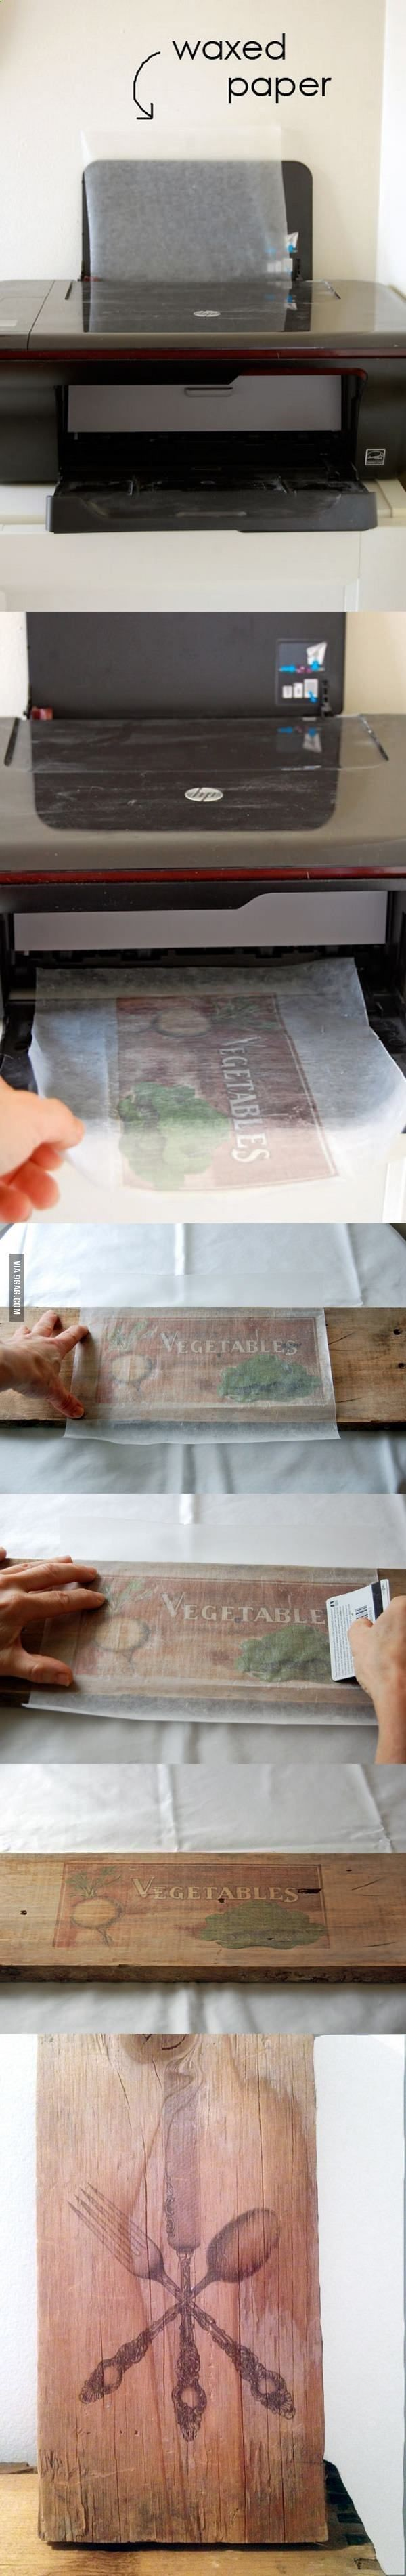 Printed transfer ^^ this is so cool